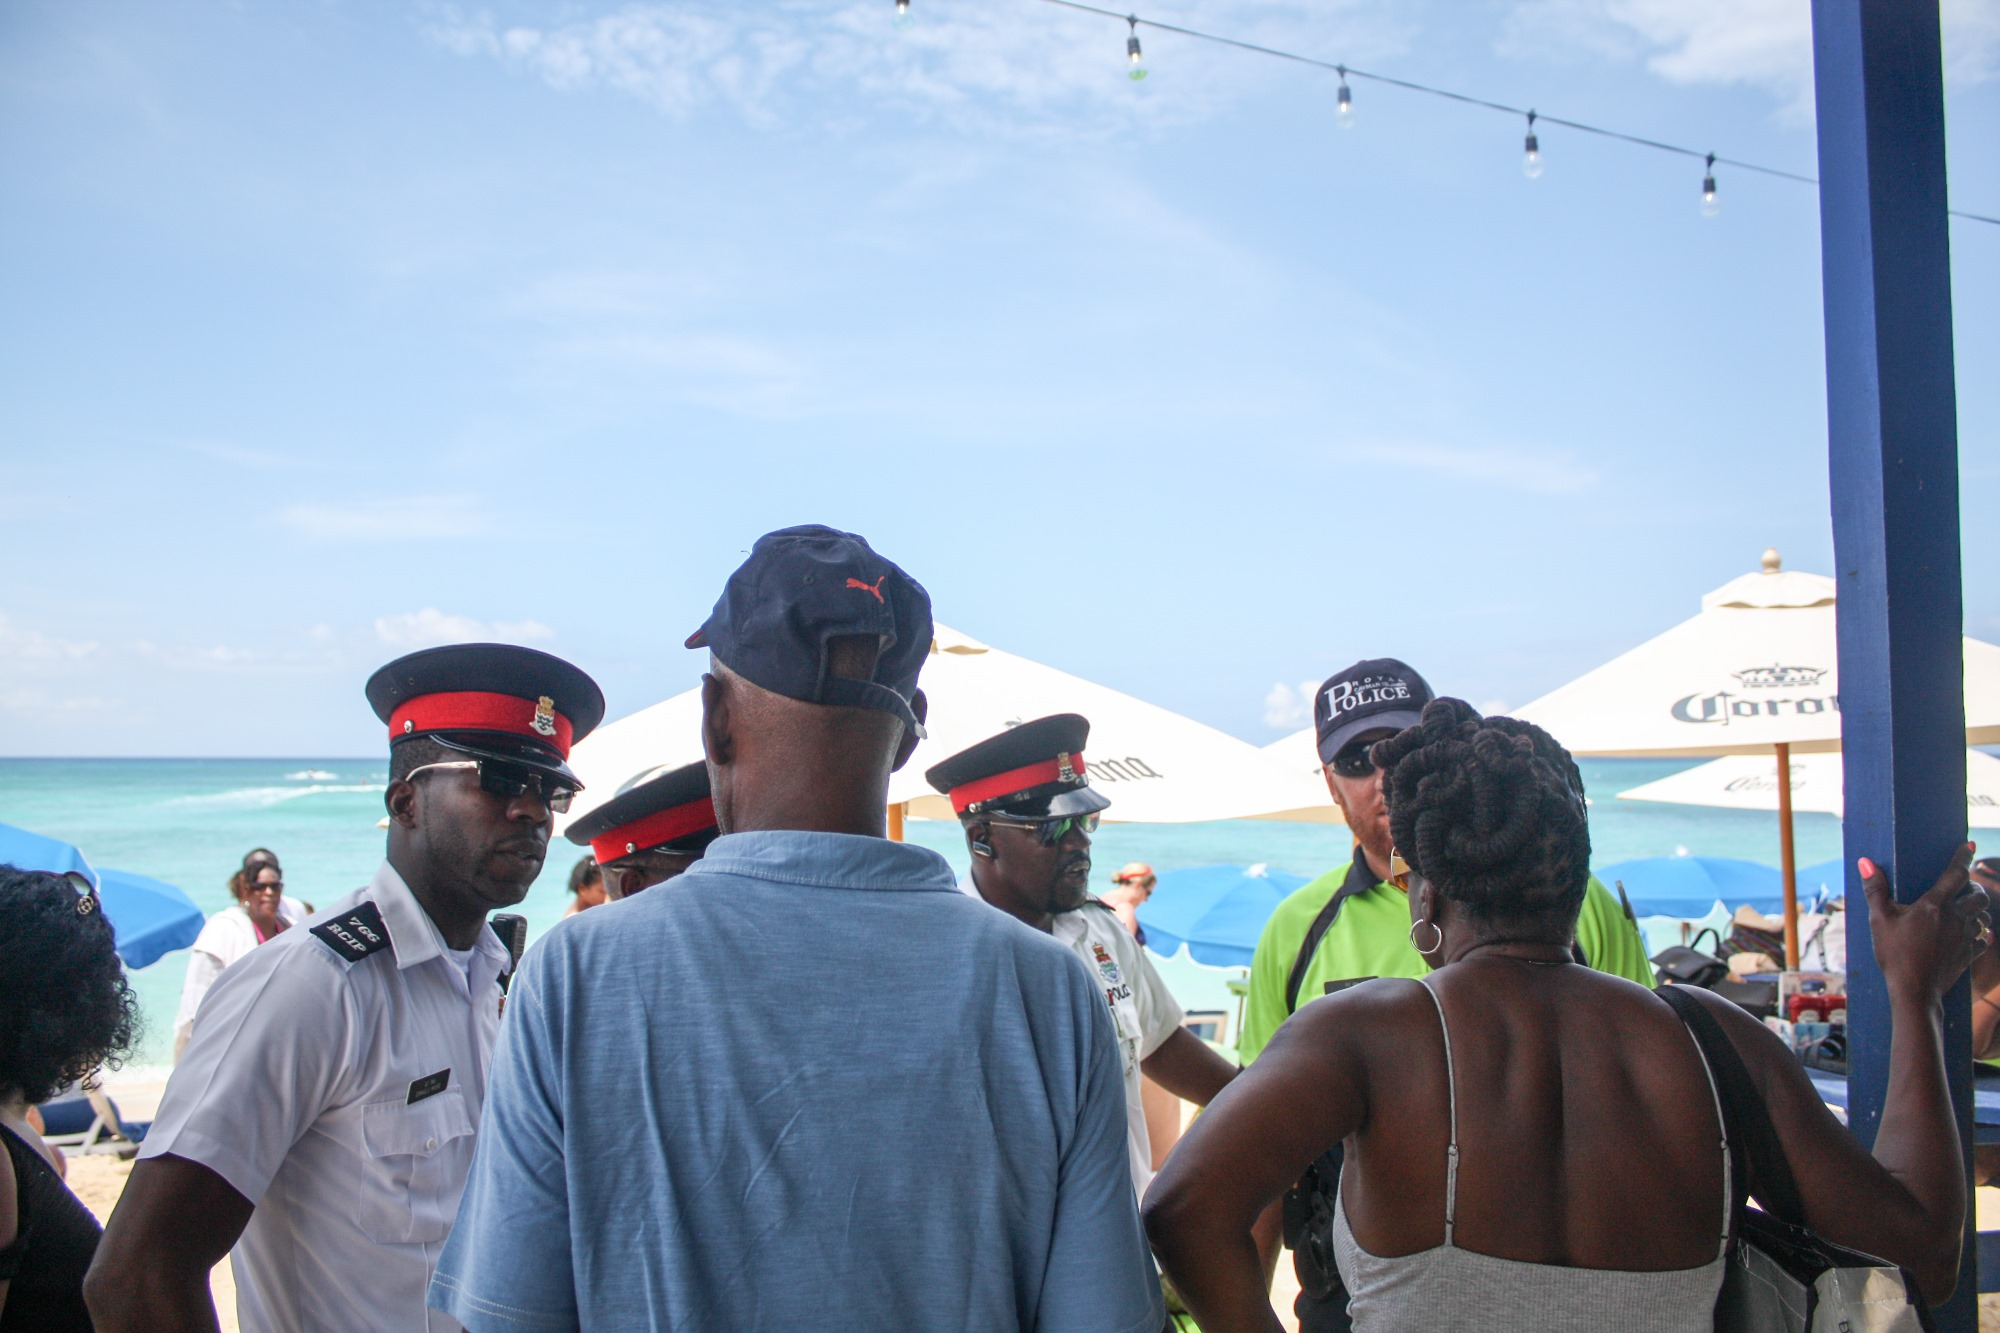 Officers interact with visitors on the beach.